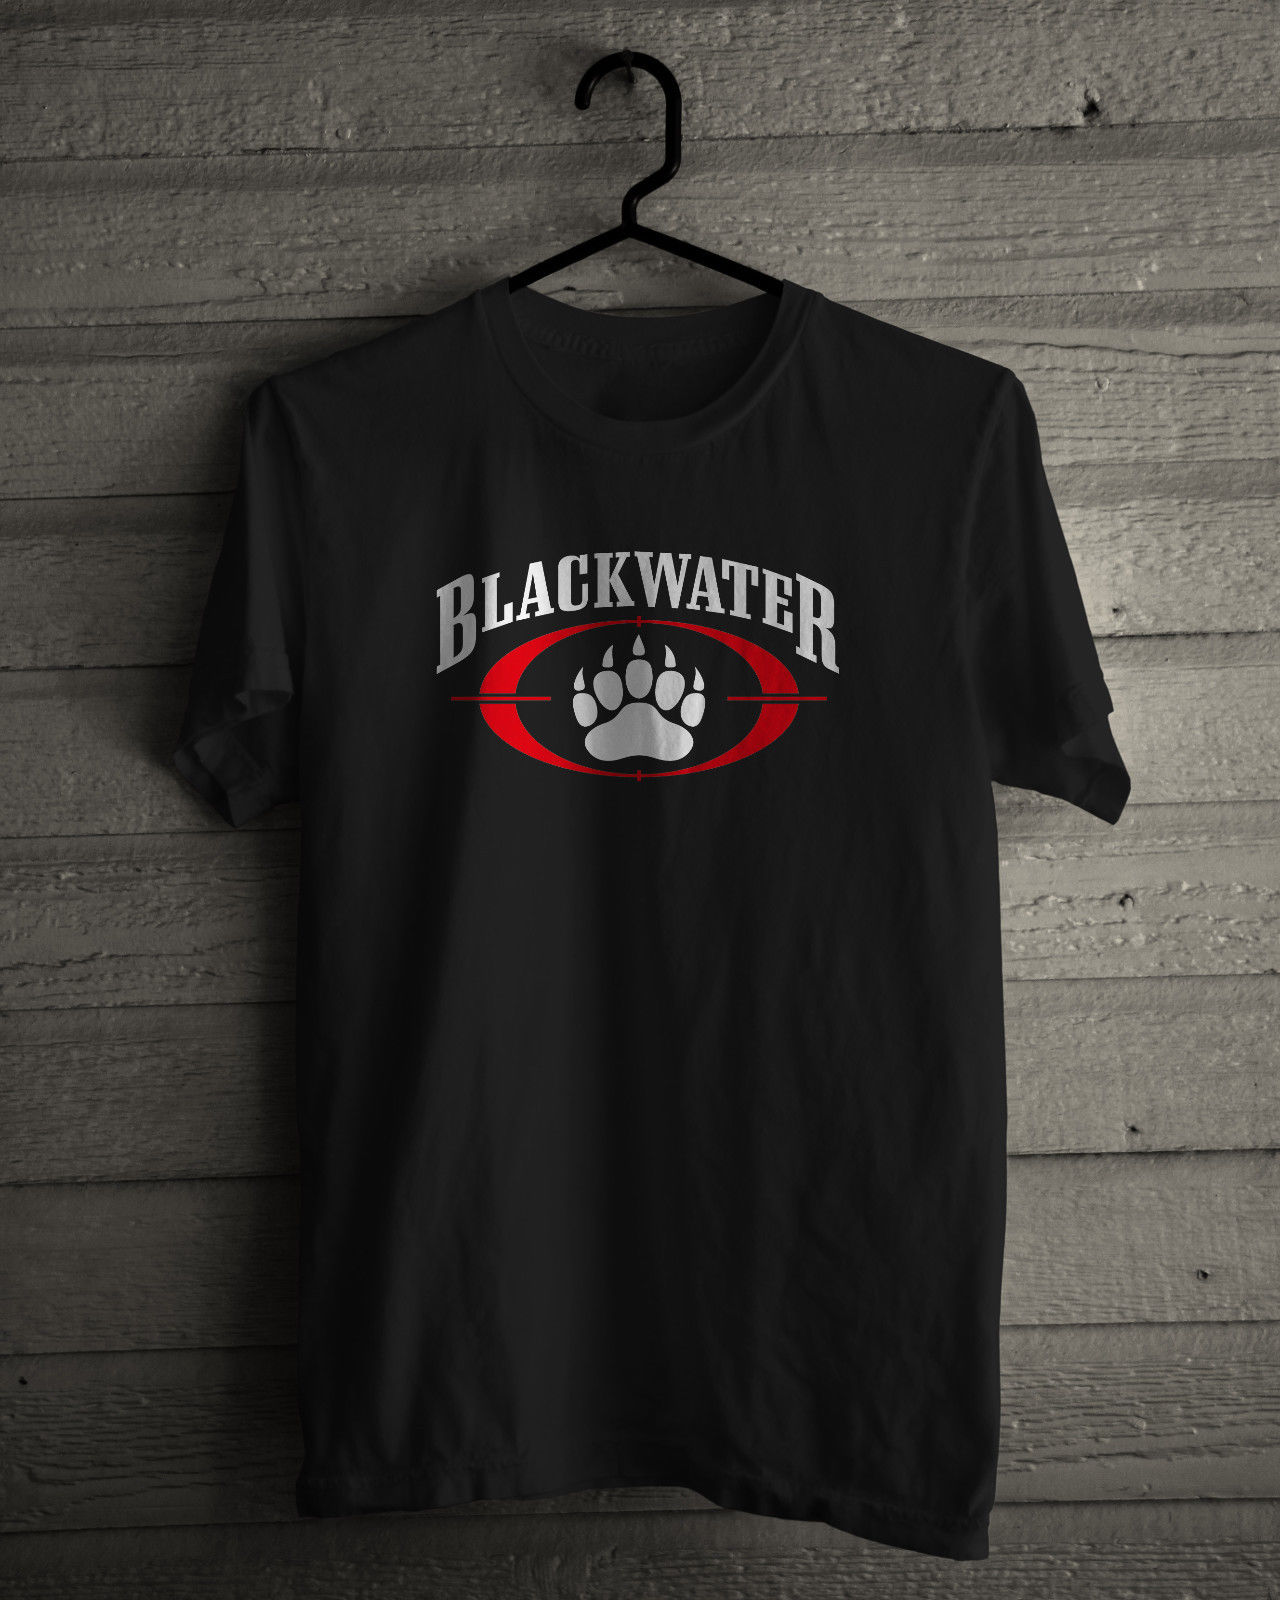 Black t shirt security - Blackwater T Shirt Private Security Company Short Sleeve Tee Black Or White Youth Round